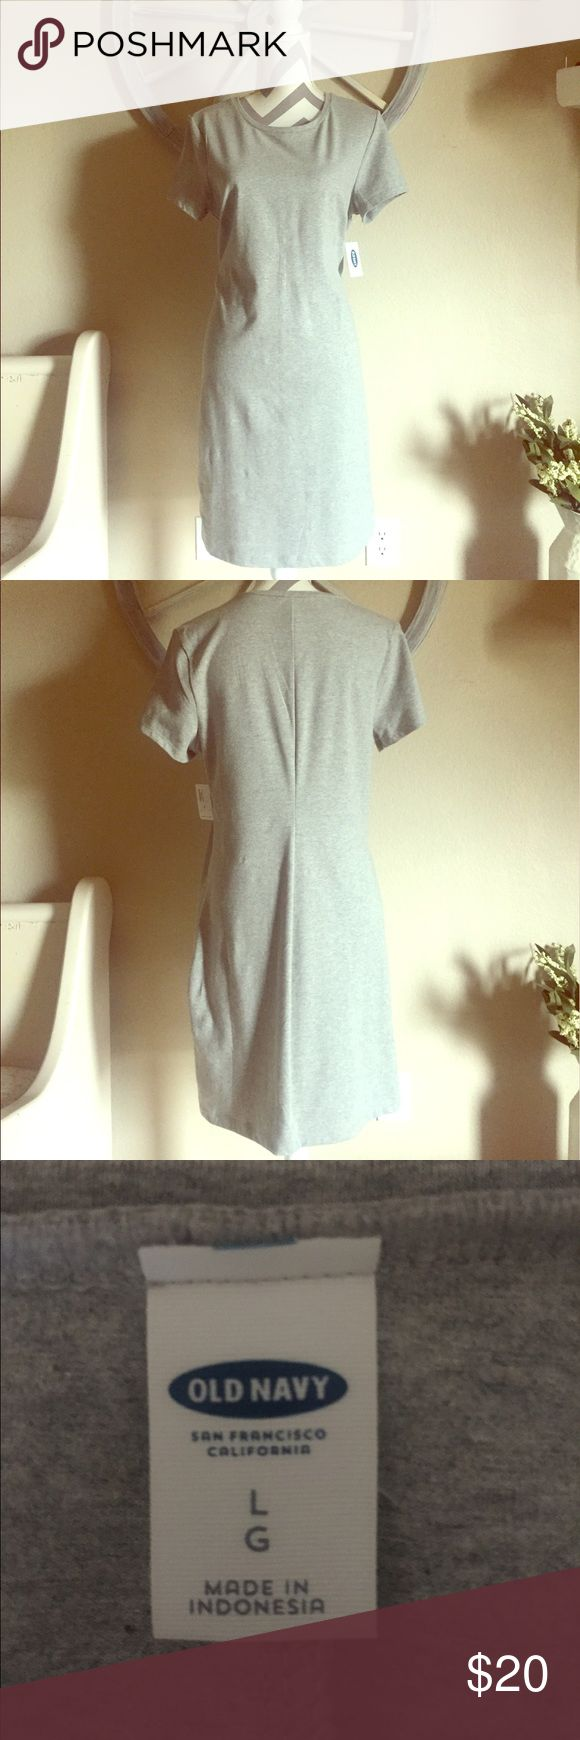 Old Navy Heather Gray T-Shirt Dress Heather gray fitted t-shirt dress. It has darts at the chest and goes in at the waistline. It's cotton/ spandex blend, so it does have some stretch to it! Thicker cotton - not see through. Measurements laid flat: chest 19, waist 17, overall length 37. Old Navy Dresses Midi